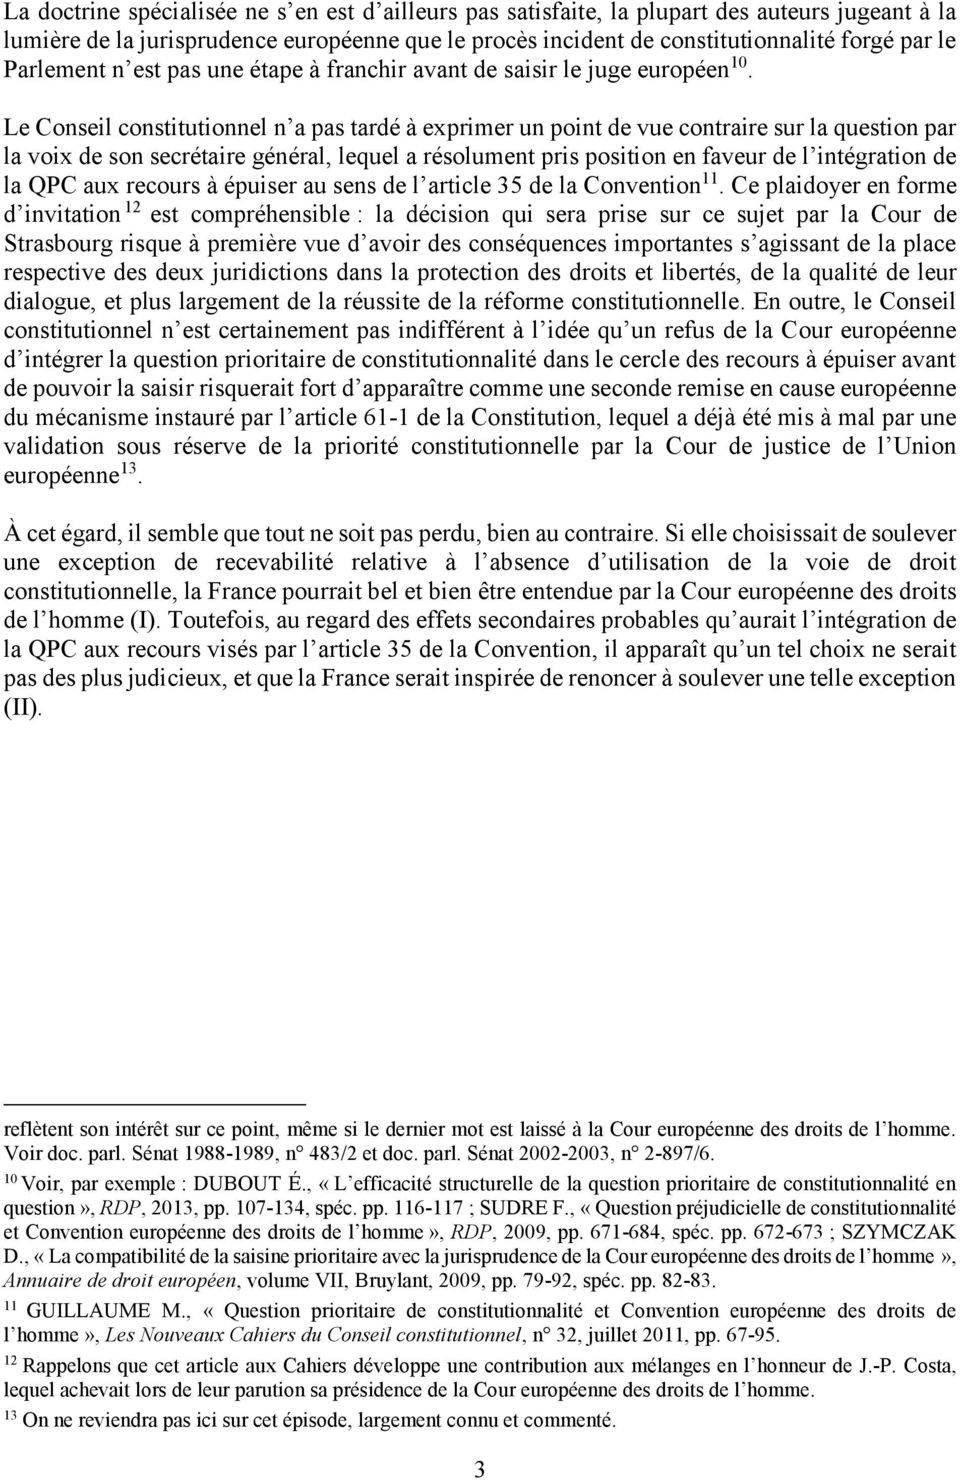 Le Conseil constitutionnel n a pas tardé à exprimer un point de vue contraire sur la question par la voix de son secrétaire général, lequel a résolument pris position en faveur de l intégration de la